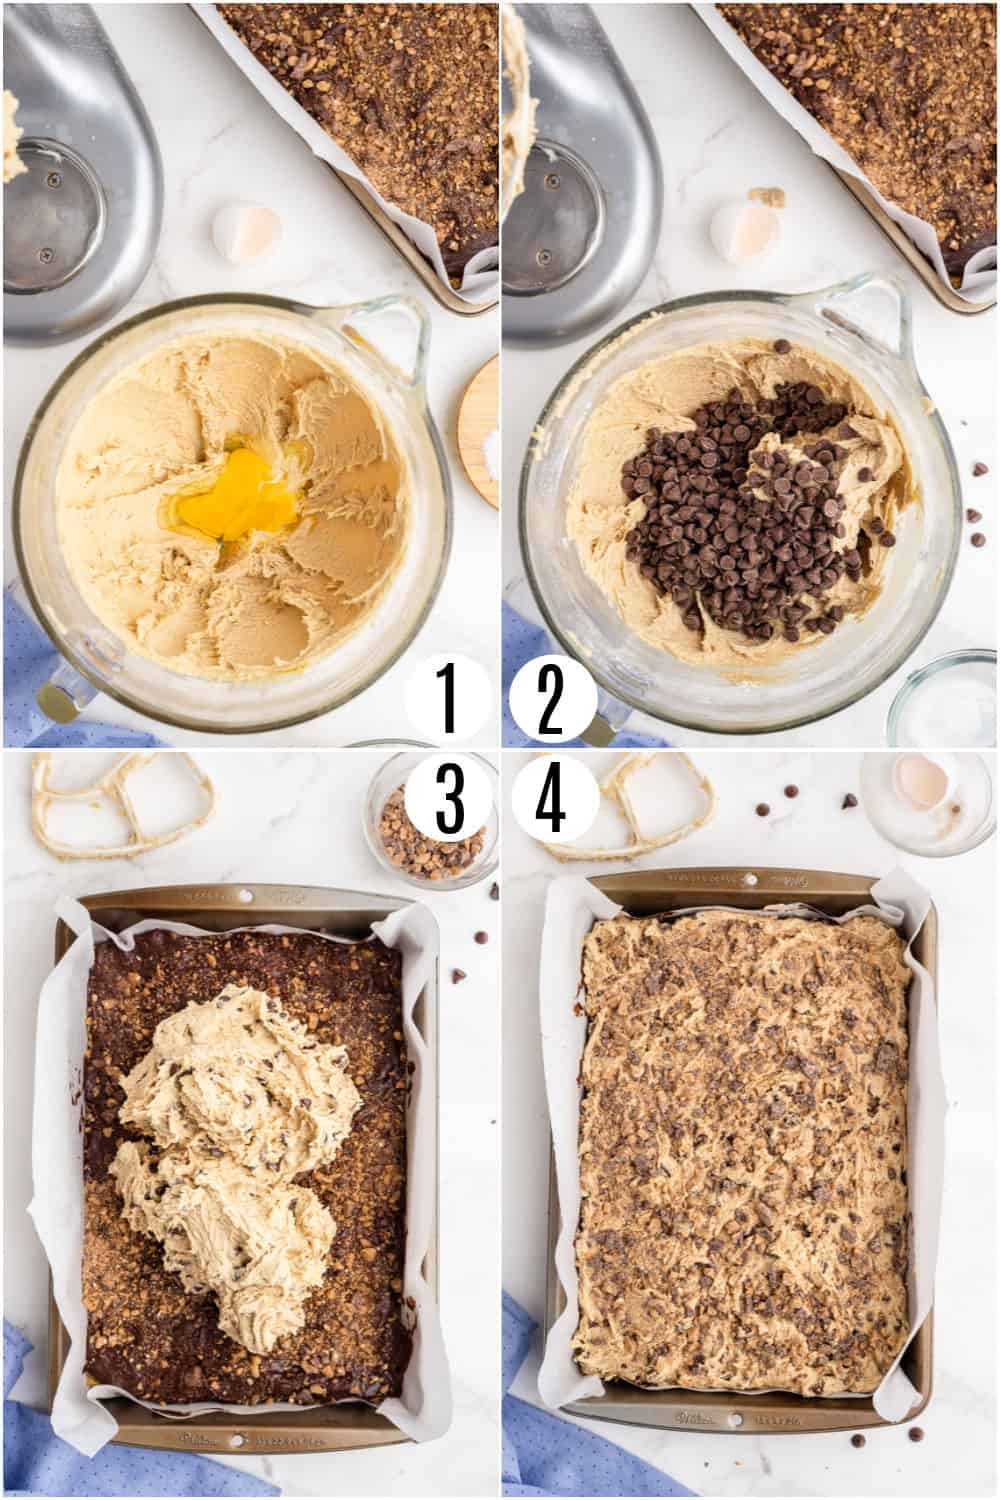 Step by step photos showing how to assemble toffee fudge bars.